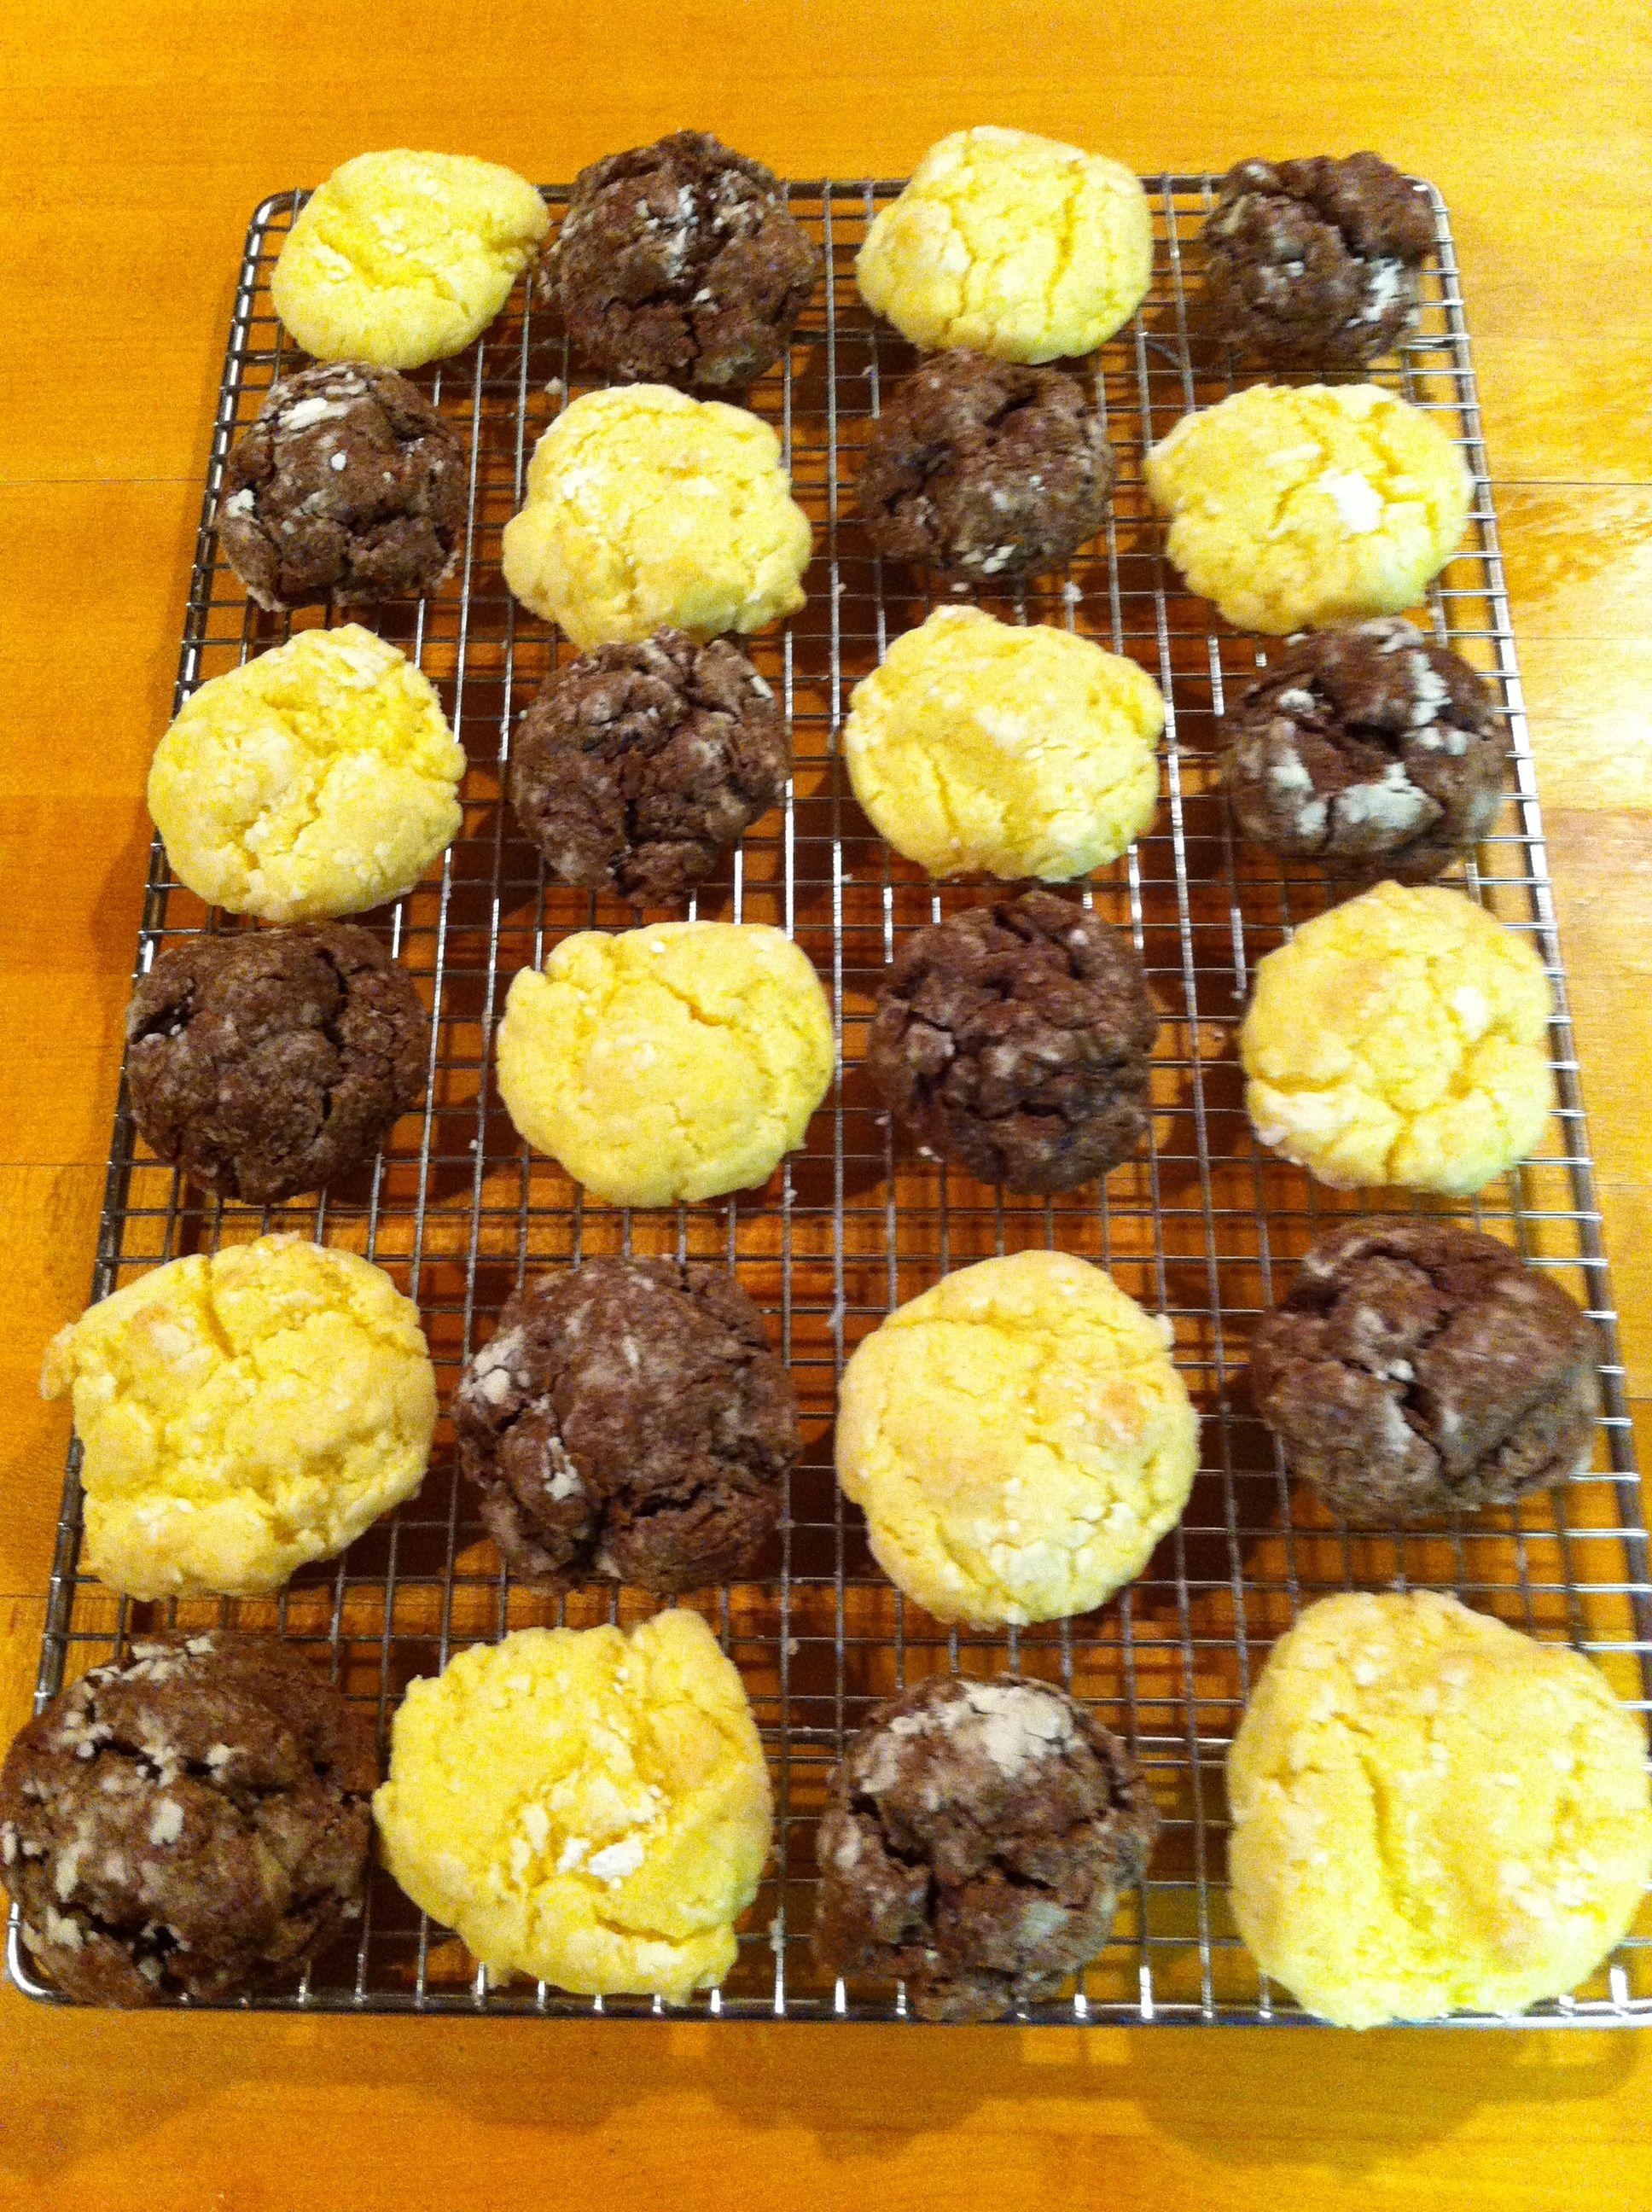 I wouldn't call these ooey gooey...Ha! I would add chocolate chips to them next time. They are SO EASY, though! Ooey Gooey Cookies  8oz cream cheese;  1 stick butter;  1 tsp vanilla;  1 egg;  1 box yellow cake mix (or any other flavor)    Mix all. Roll in powdered sugar. Bake at 350-375 for about 15 min. This picture is lemon and chocolate cake mix.